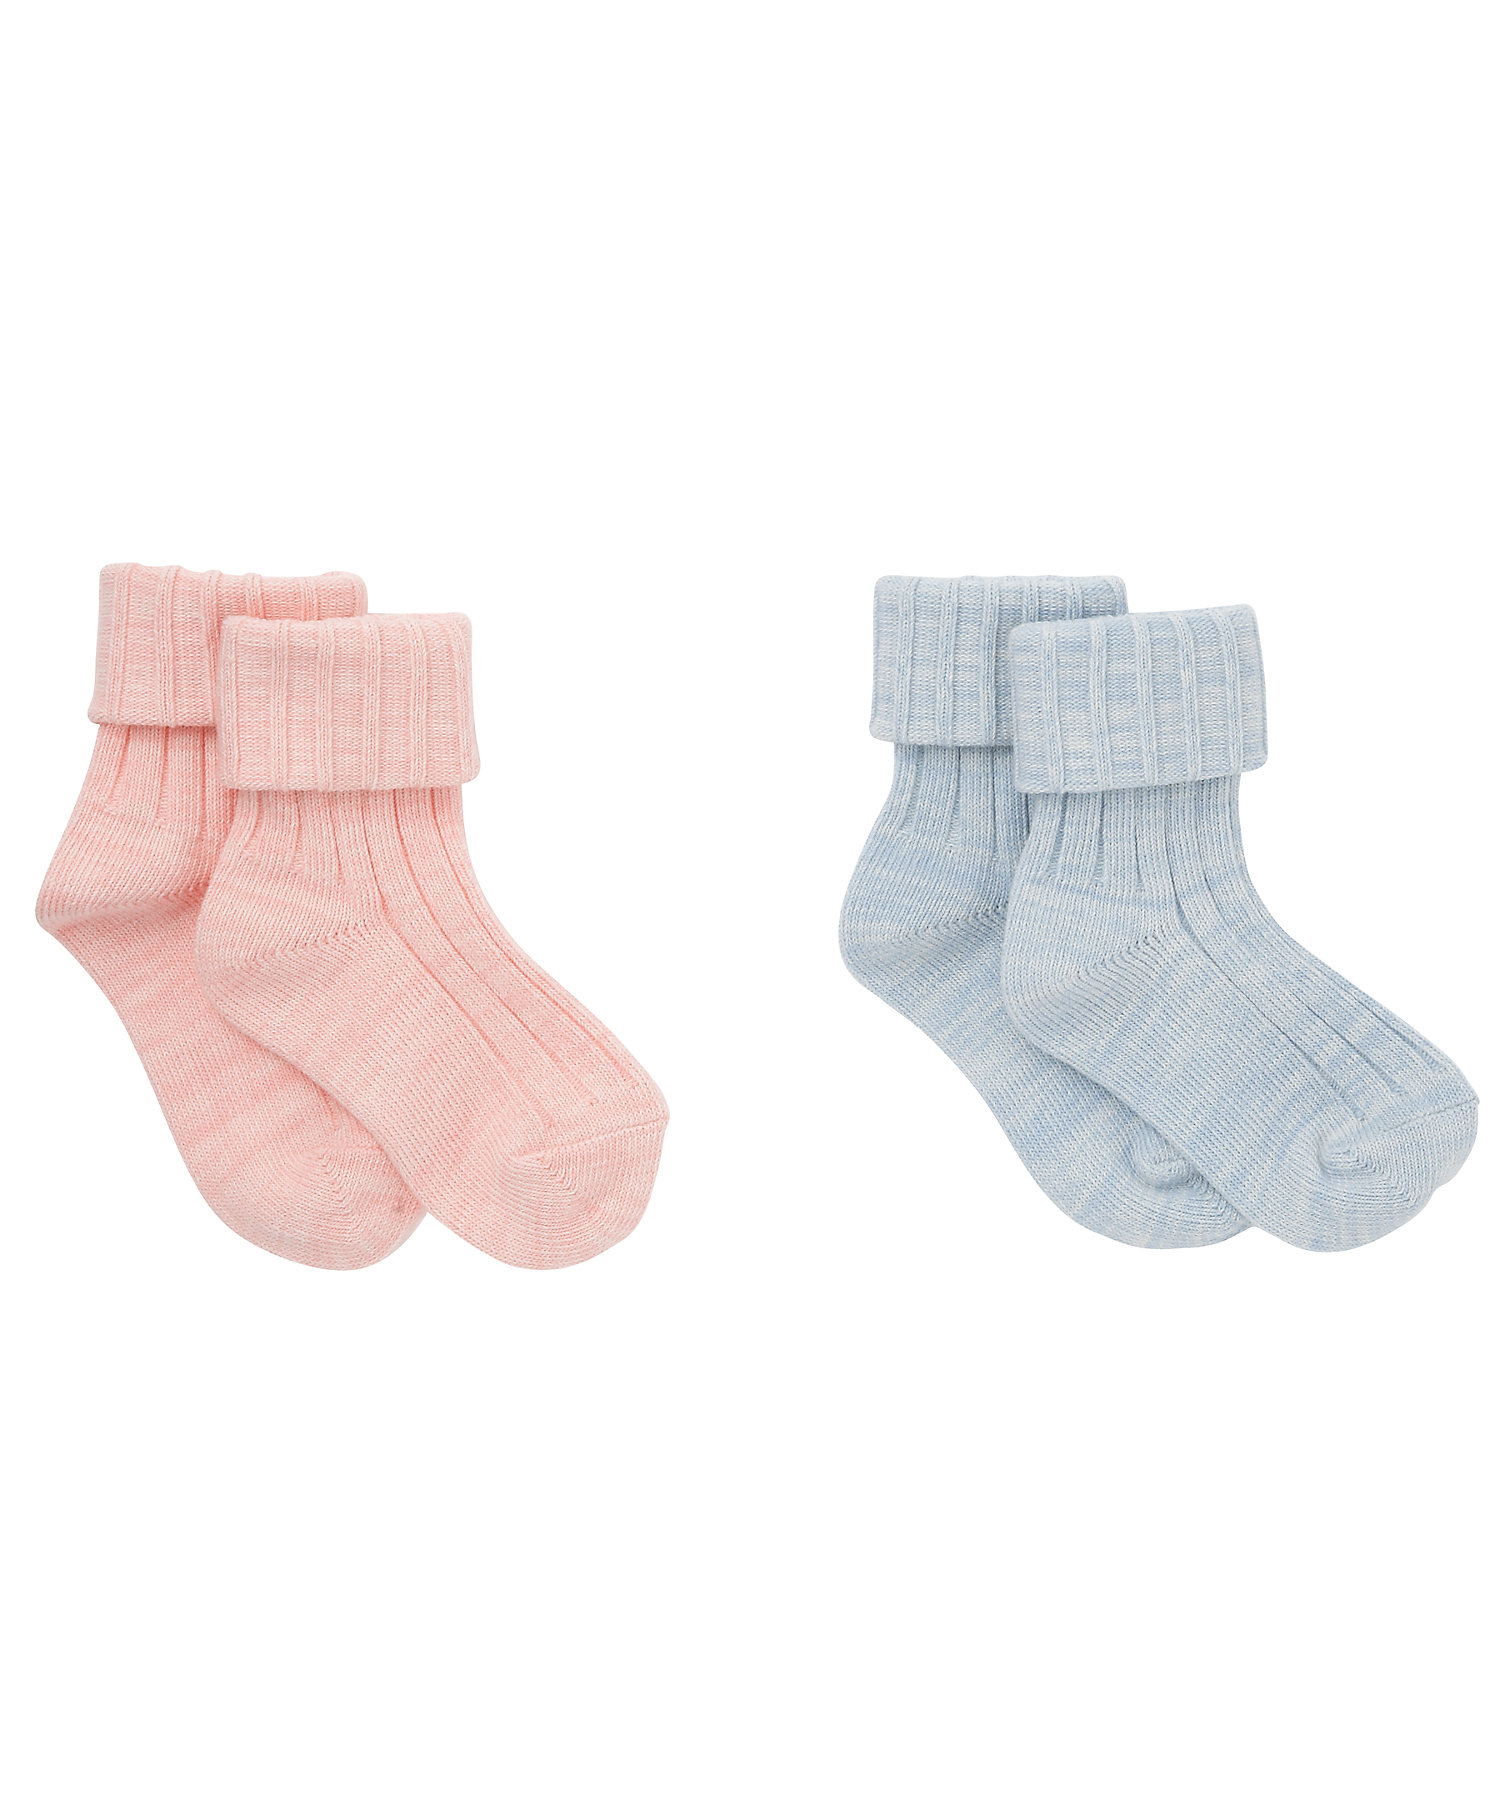 Mothercare | Girls Ribbed Socks - Pack Of 2 - Multicolor